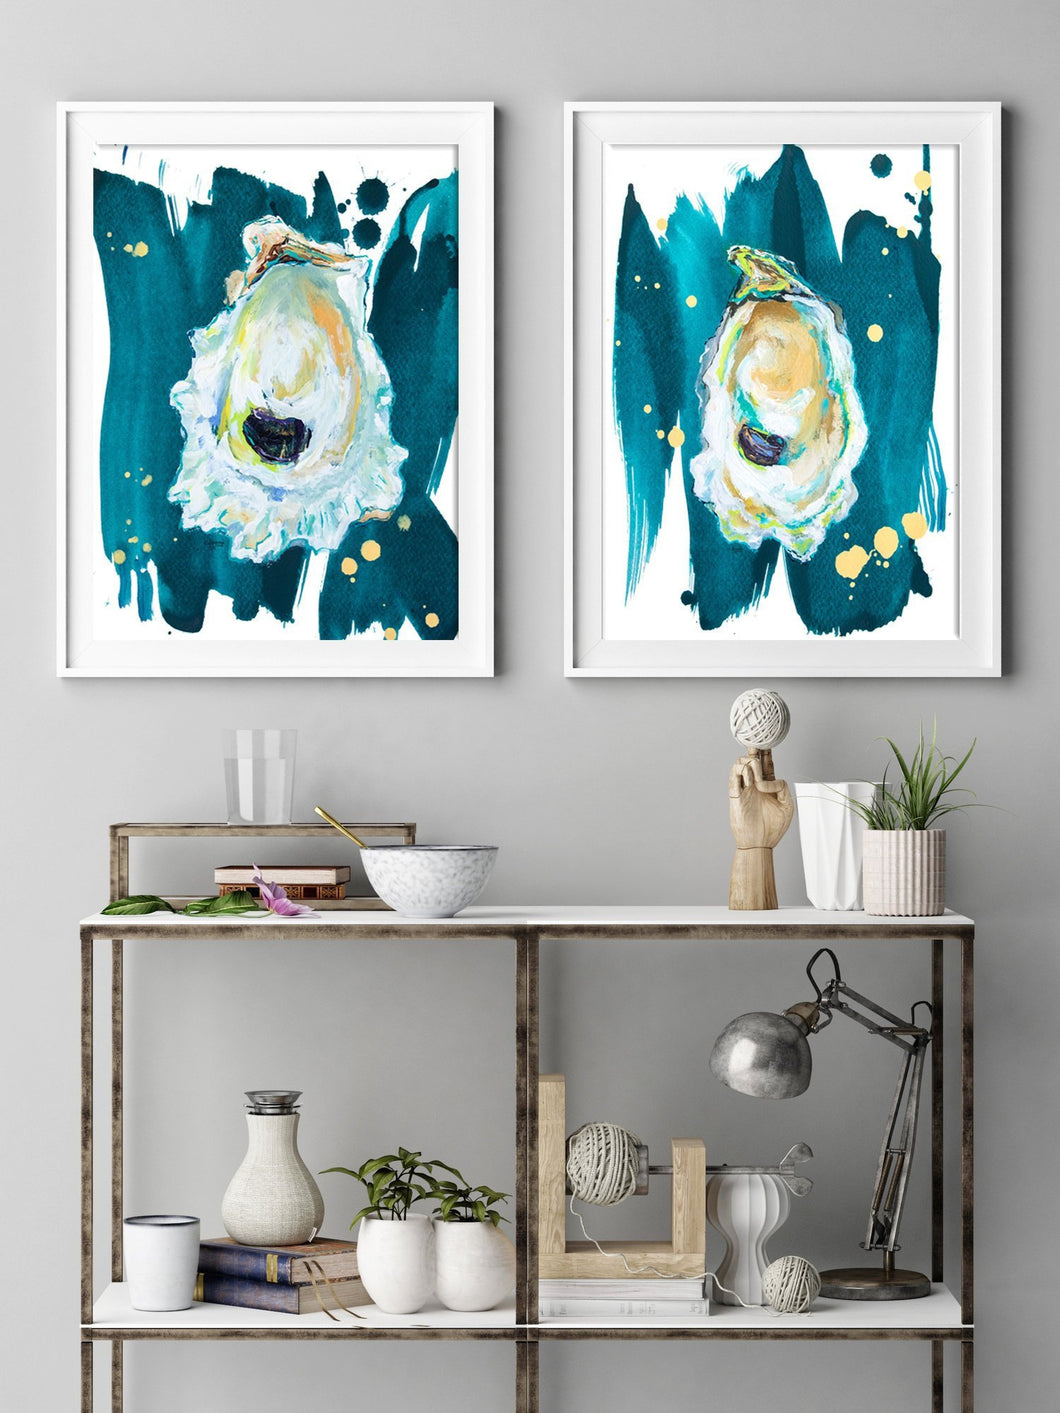 Art Print Sets, Oyster Prints, Oyster Art, Discounted Art Print Set of Two Oyster Paintings Gallery Wall Art